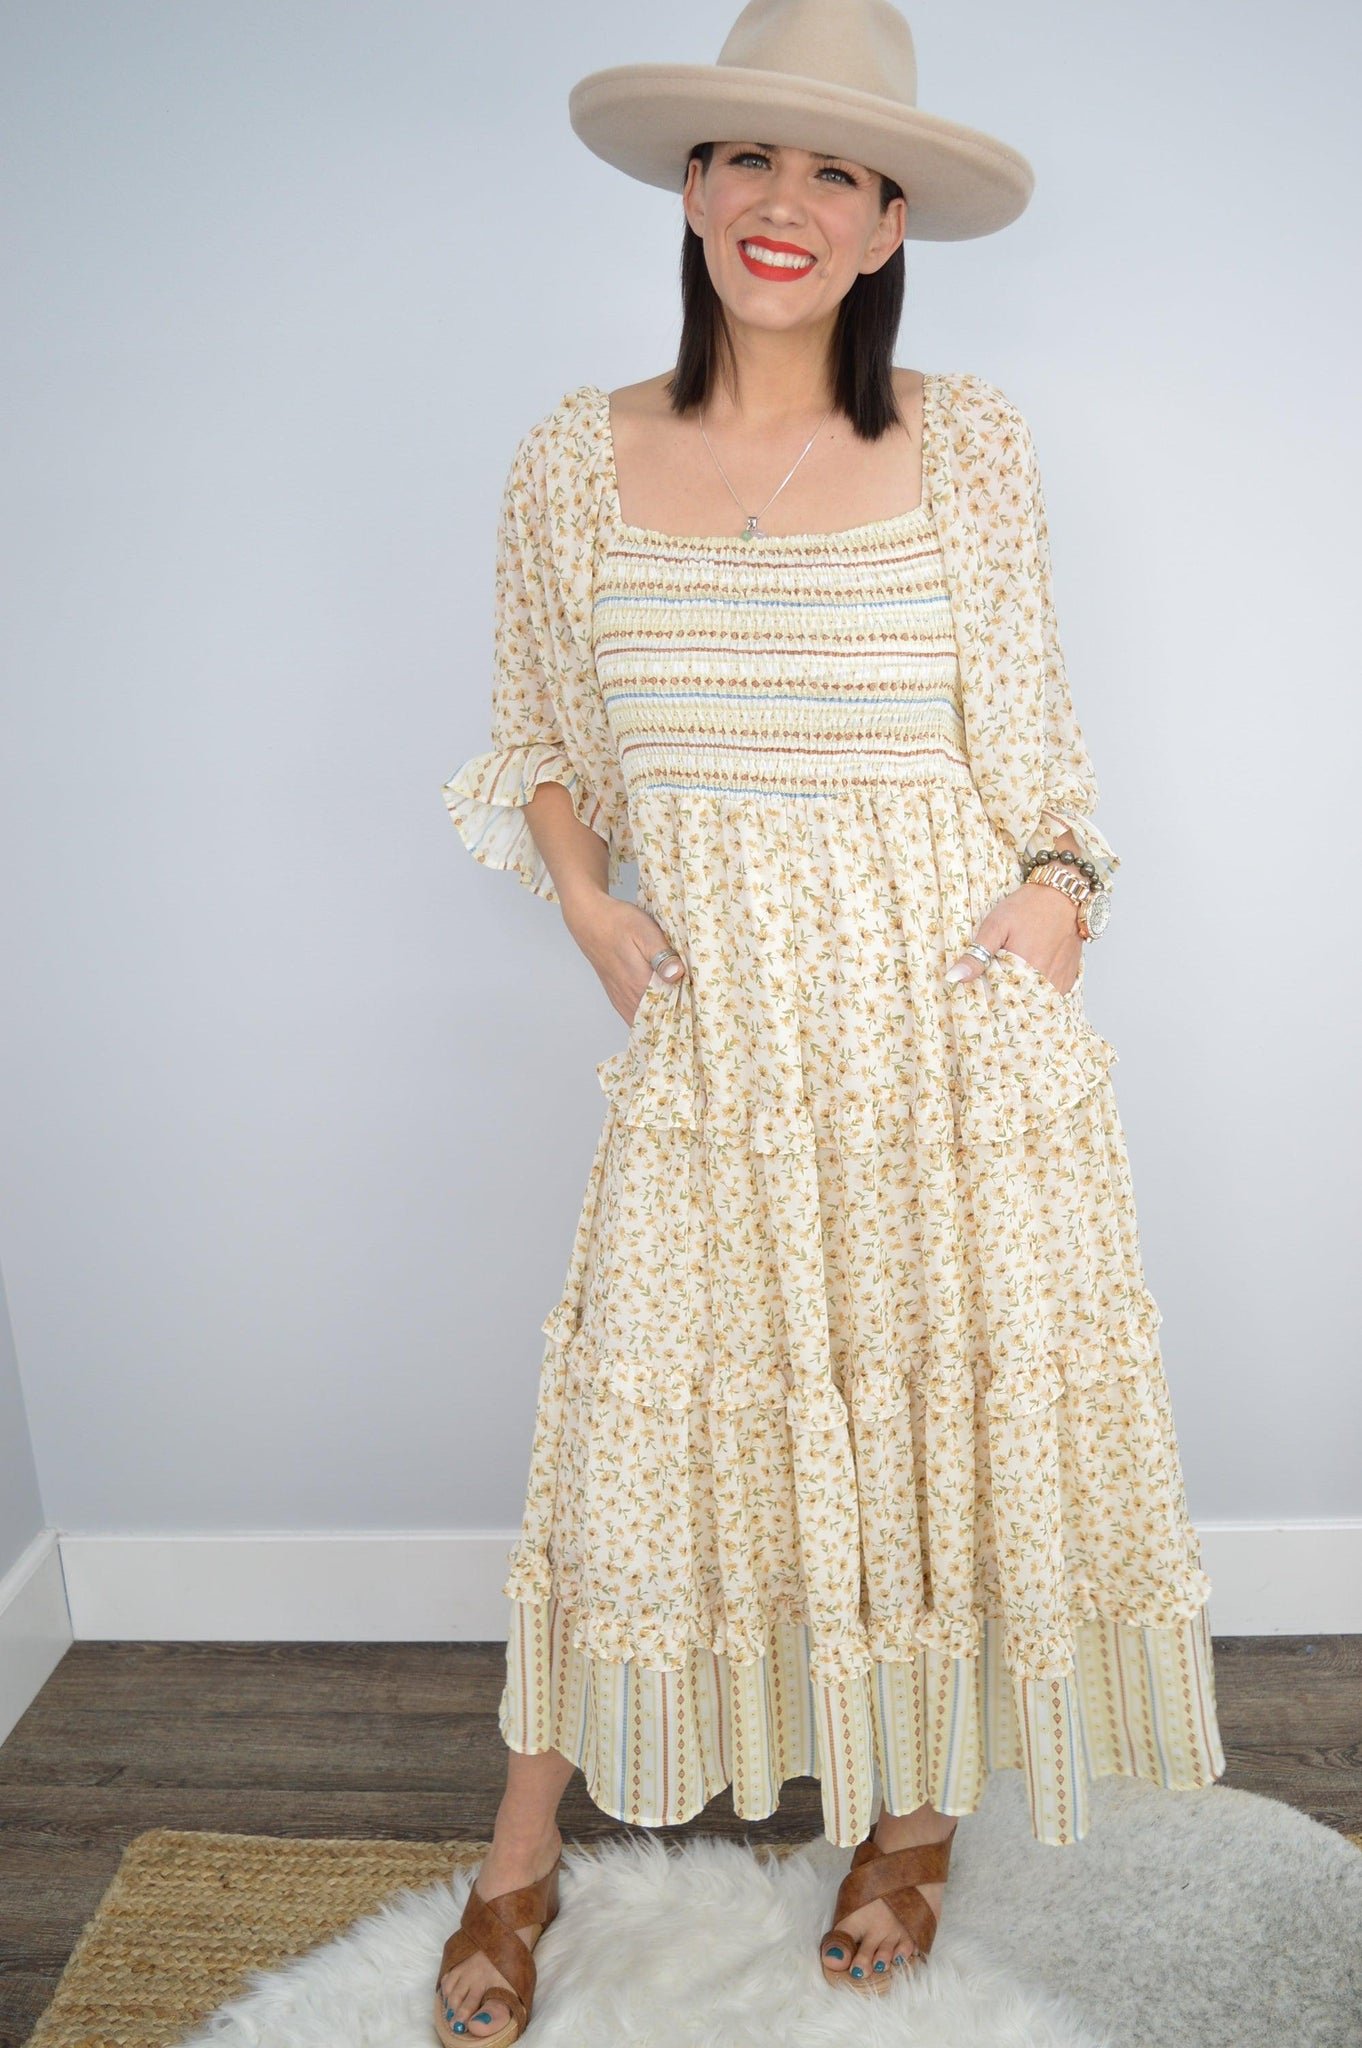 Cotton Leggings - Tara Lynn's Boutique